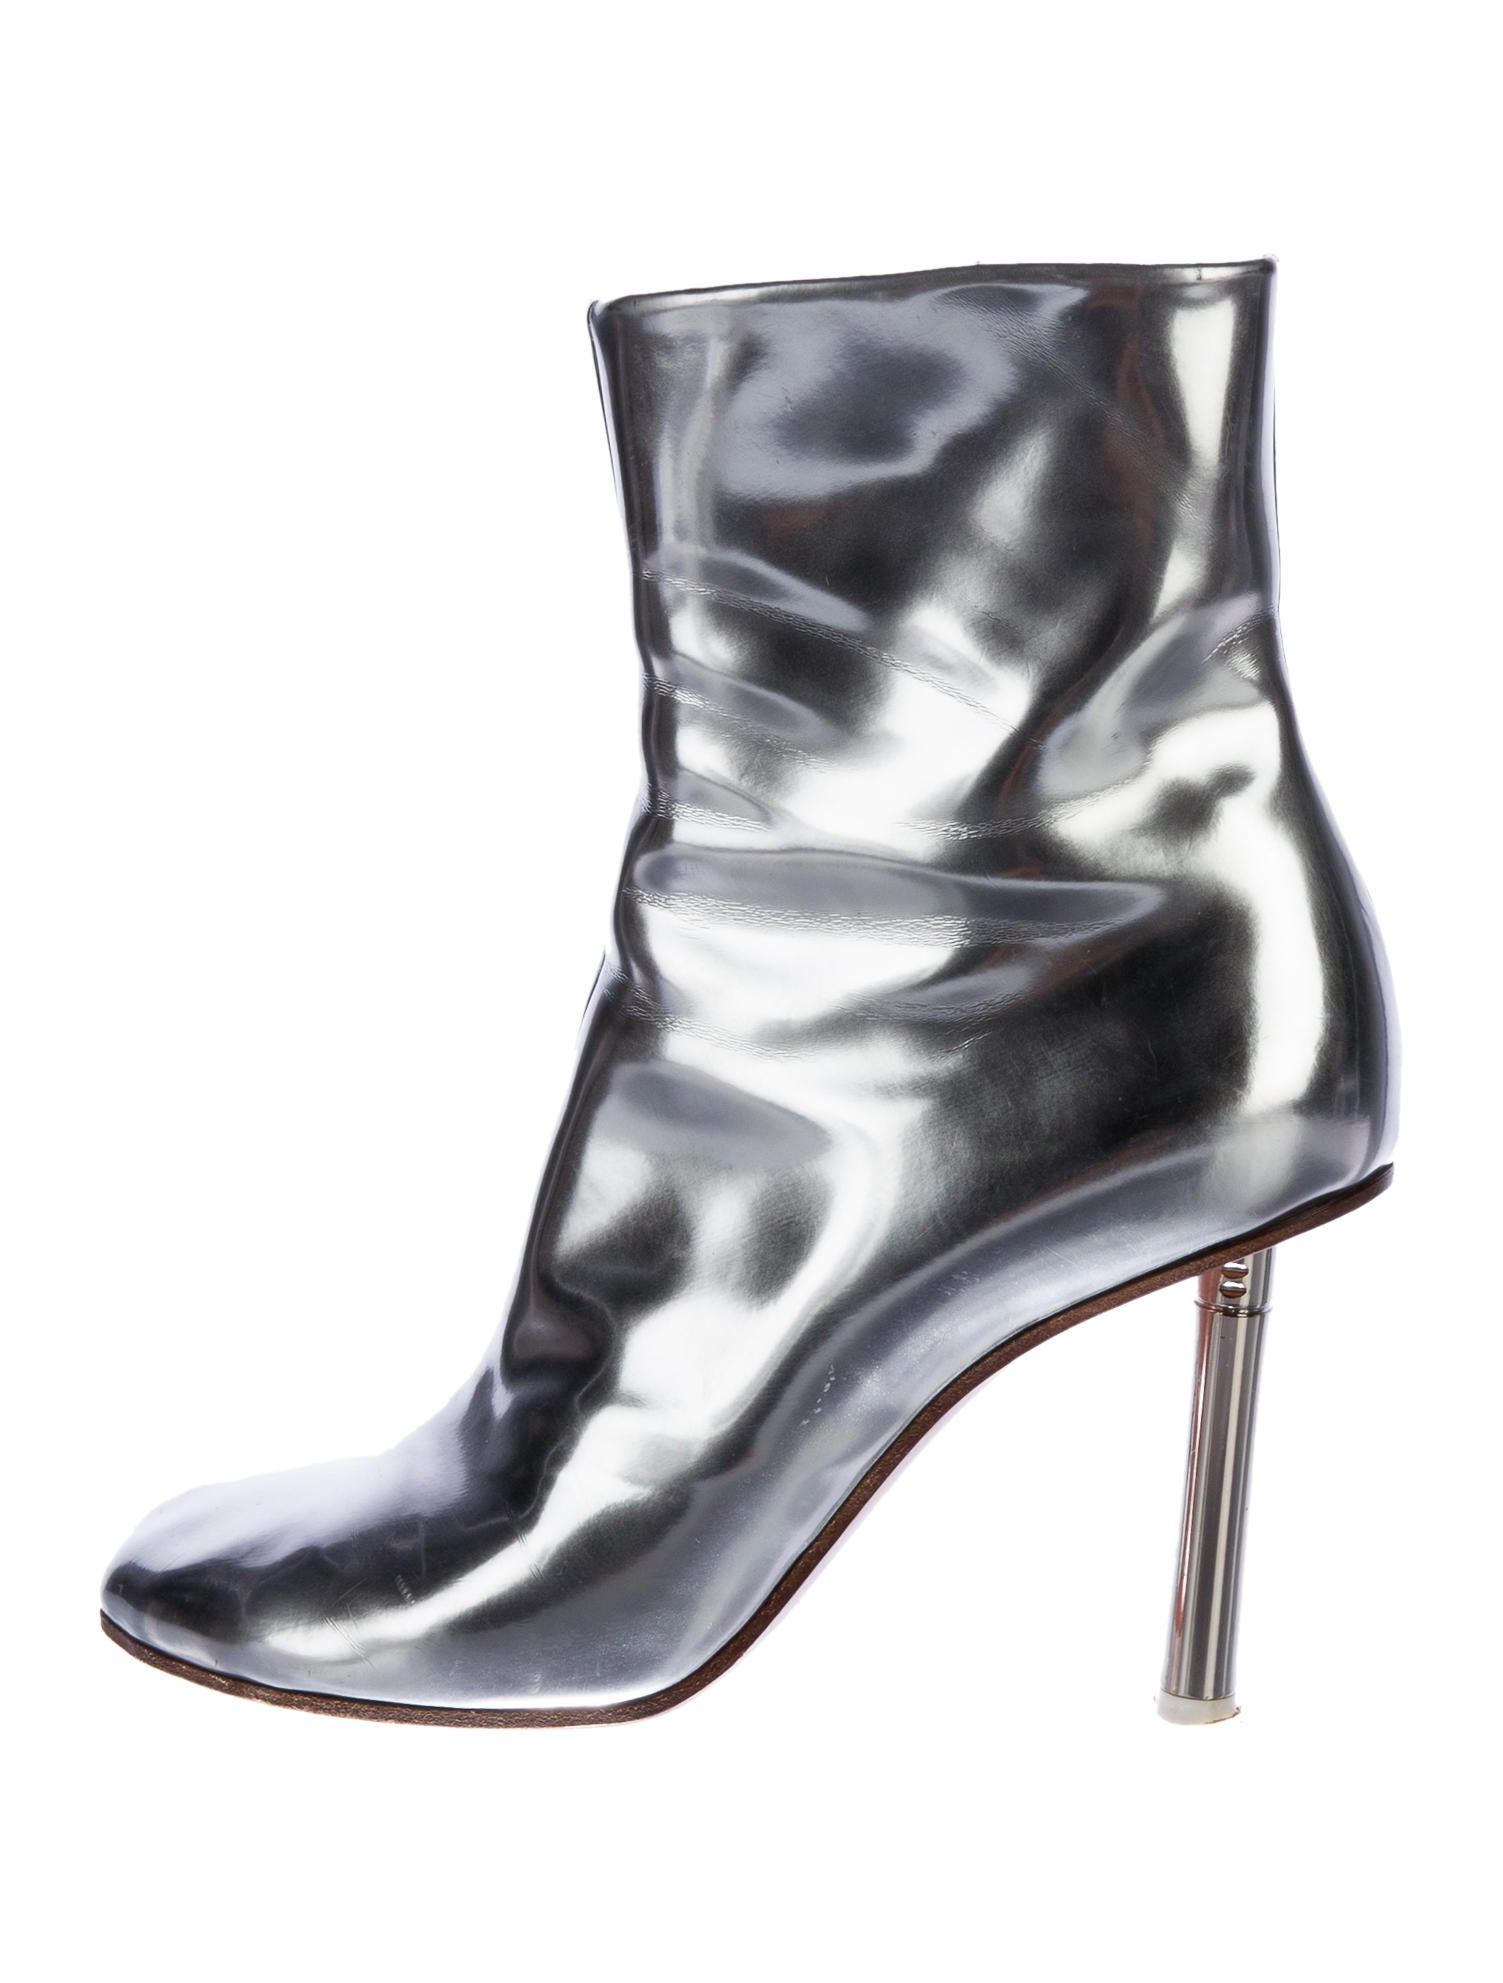 Metallic Leather Boots : Vetements metallic leather ankle boots shoes